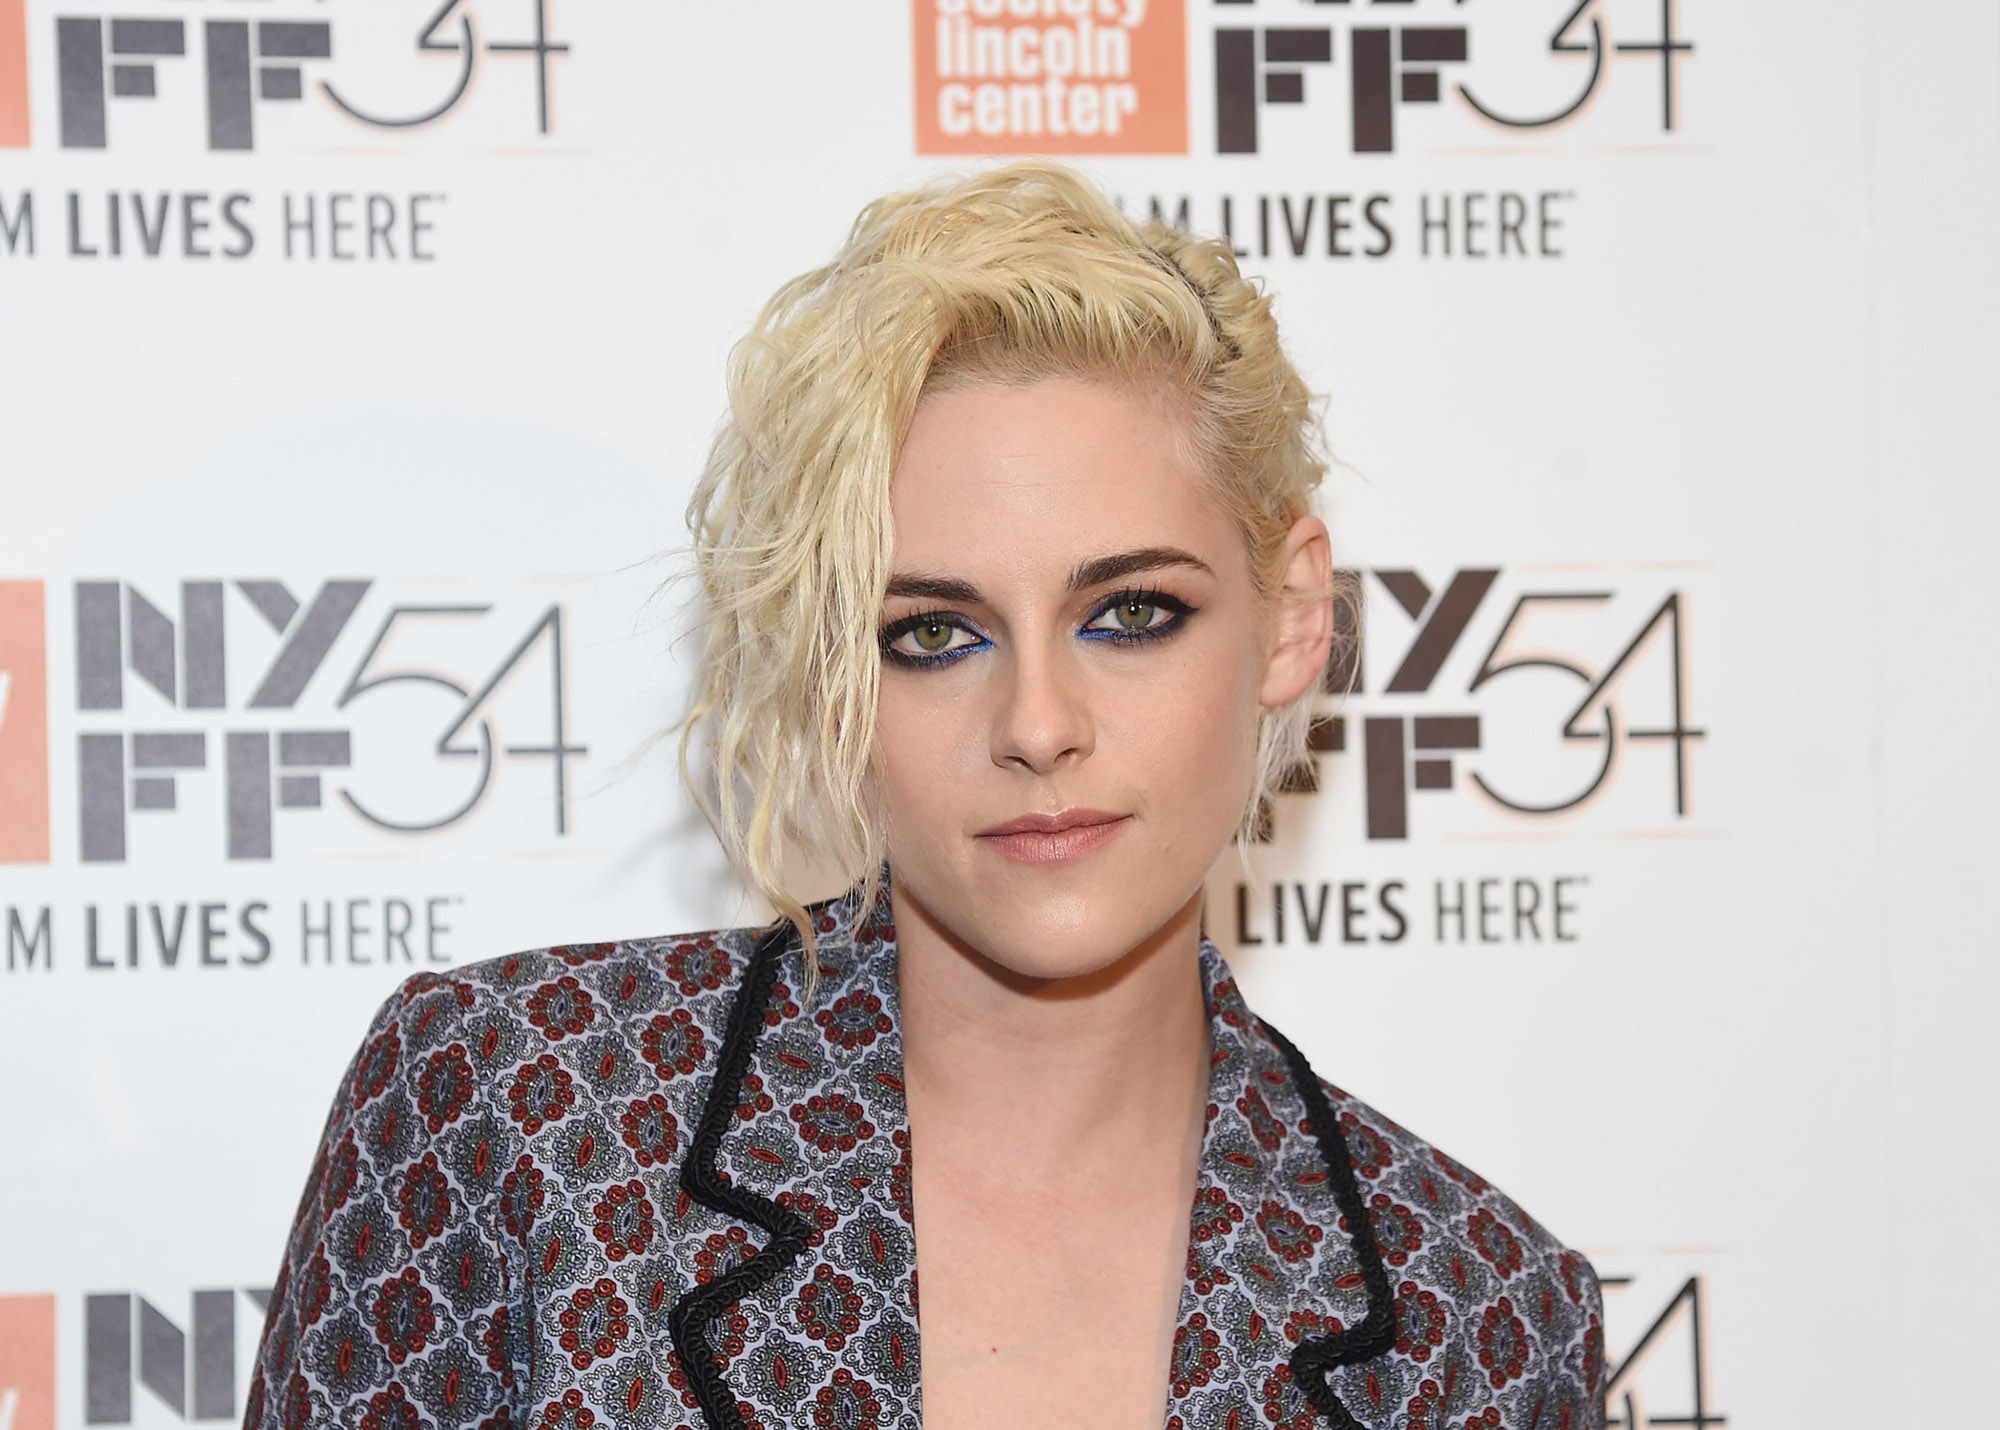 Kristen Stewart attends  An Evening with Kristen Stewart  during the 54th New York Film Festival at Stanley H. Kaplan Penthouse at Lincoln Center on October 5, 2016 in New York City.  (Photo by Jamie McCarthy/Getty Images)